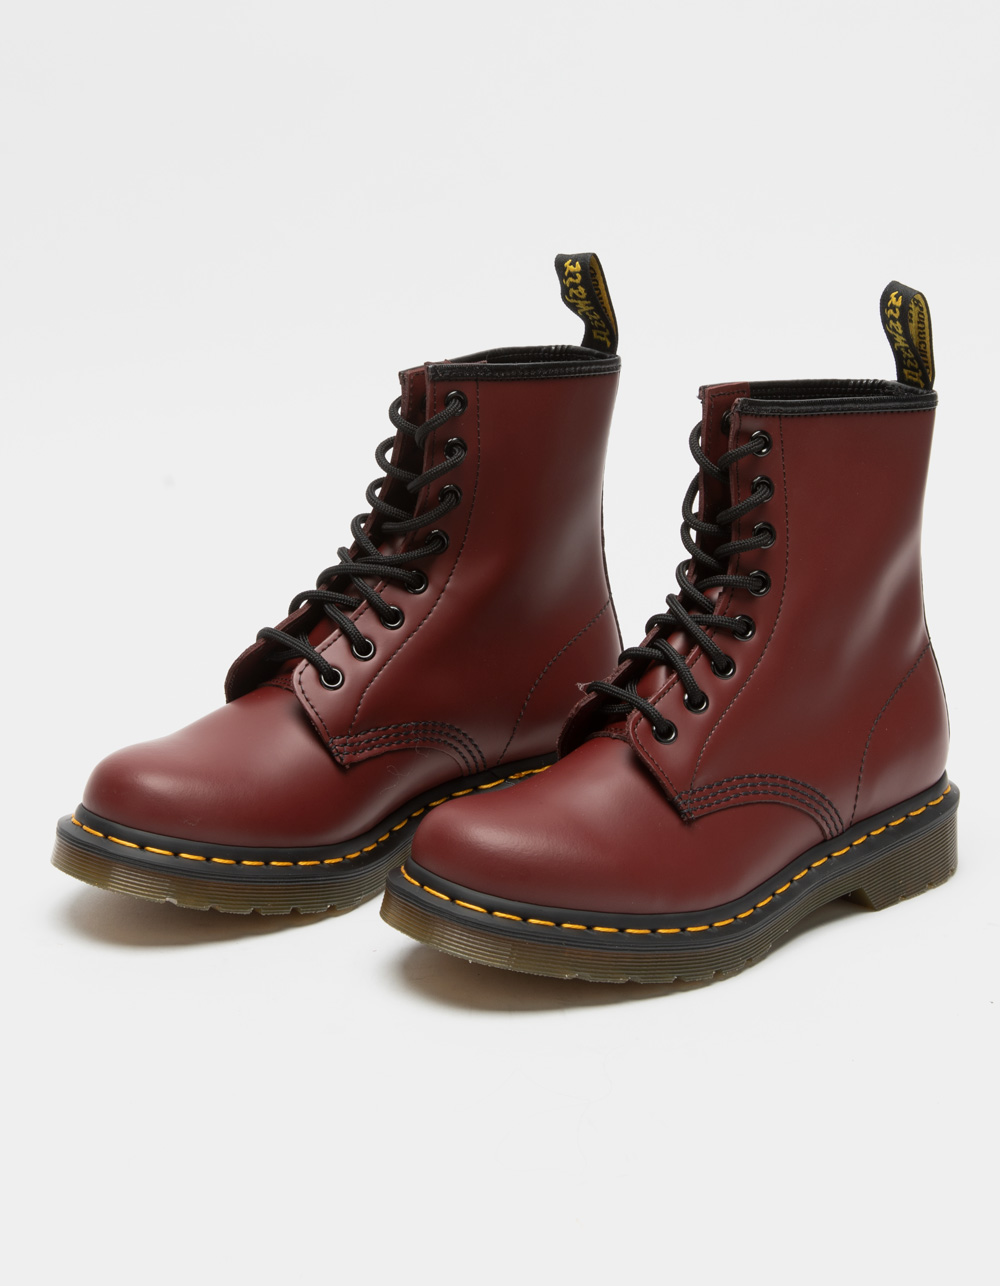 Image of DR. MARTENS 1460 BOOTS